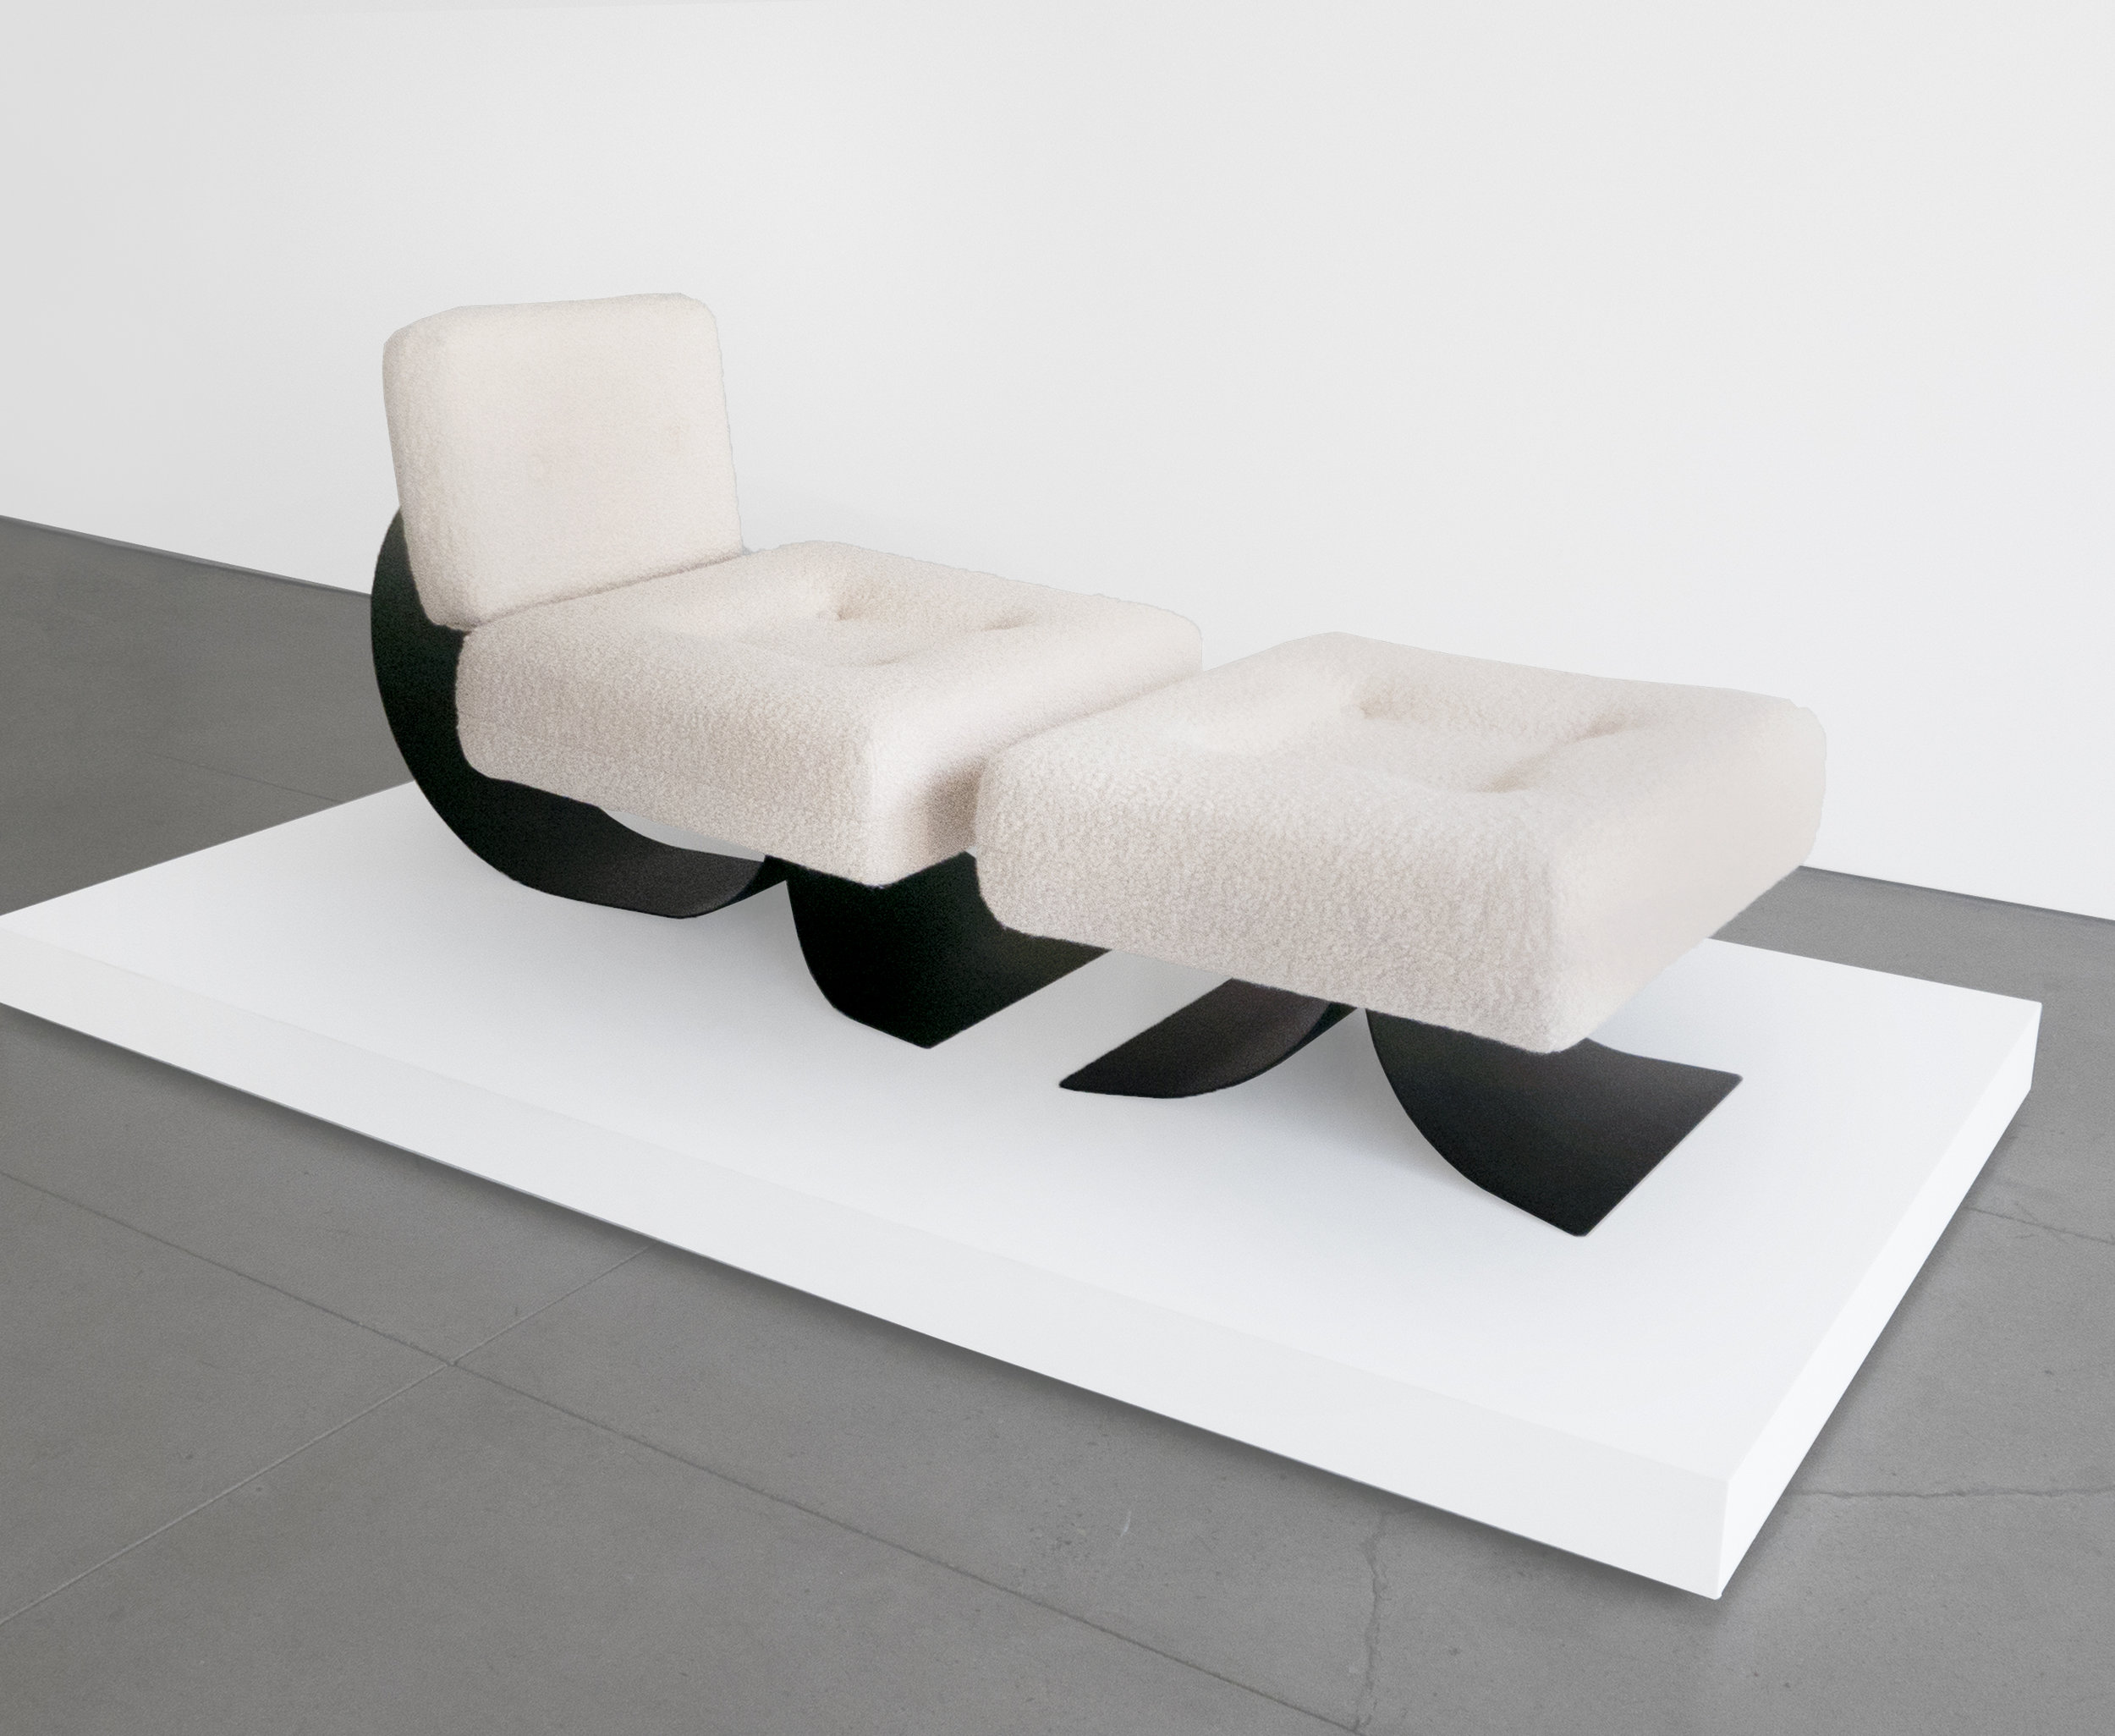 Oscar Niemeyer Attrib. Re-Issue Prototype %22Alta%22 Chair, c.1971, Upholstery, Metal, 32 H x 28 W x 31 D inches_1.jpg